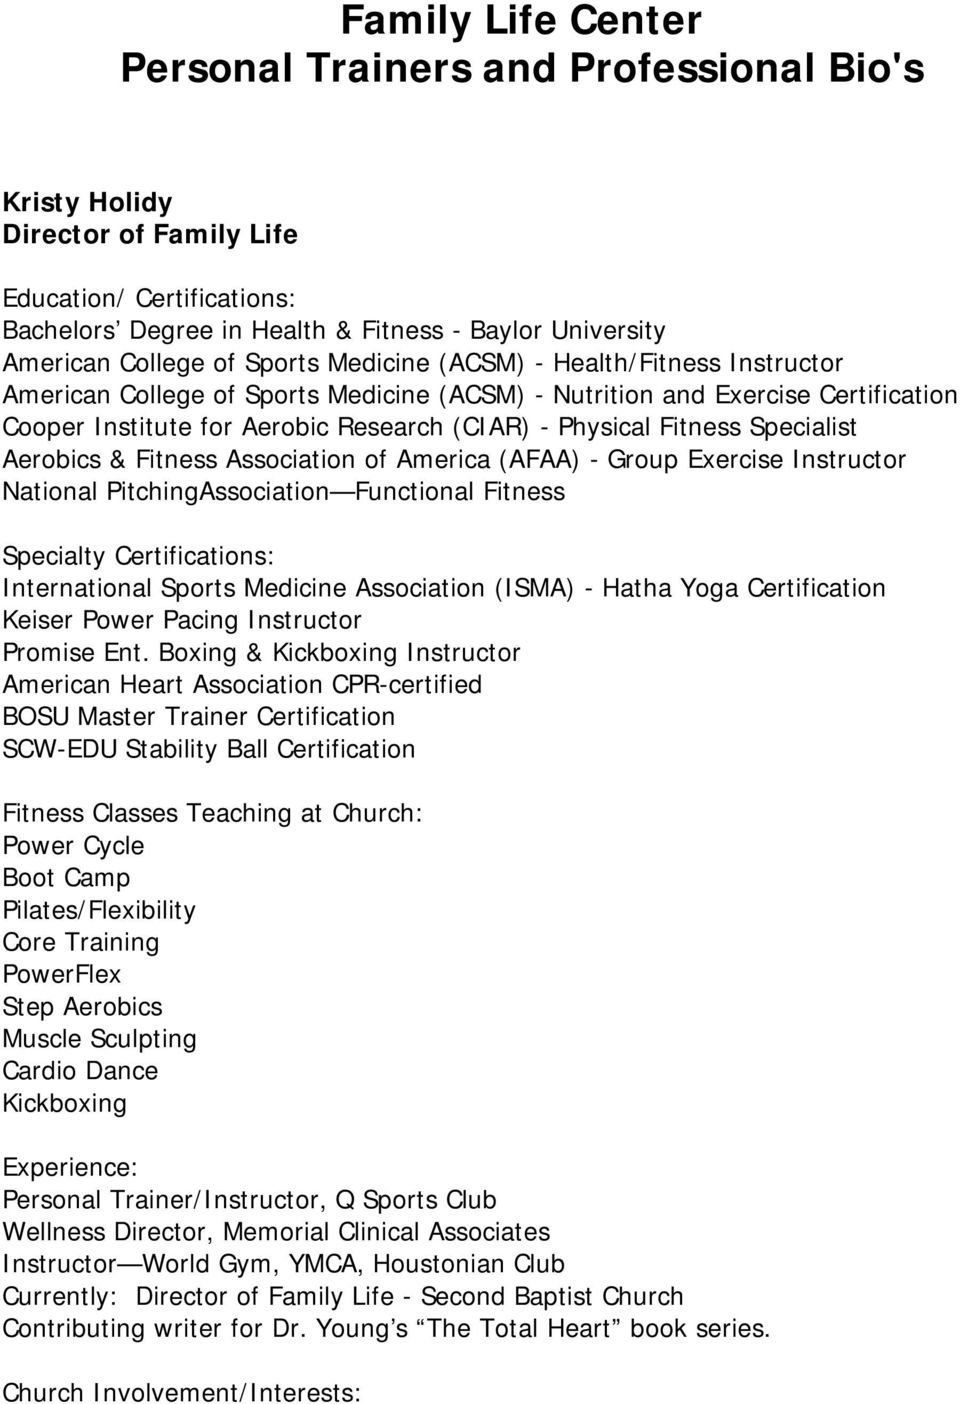 Family Life Center Personal Trainers And Professional Bios Pdf